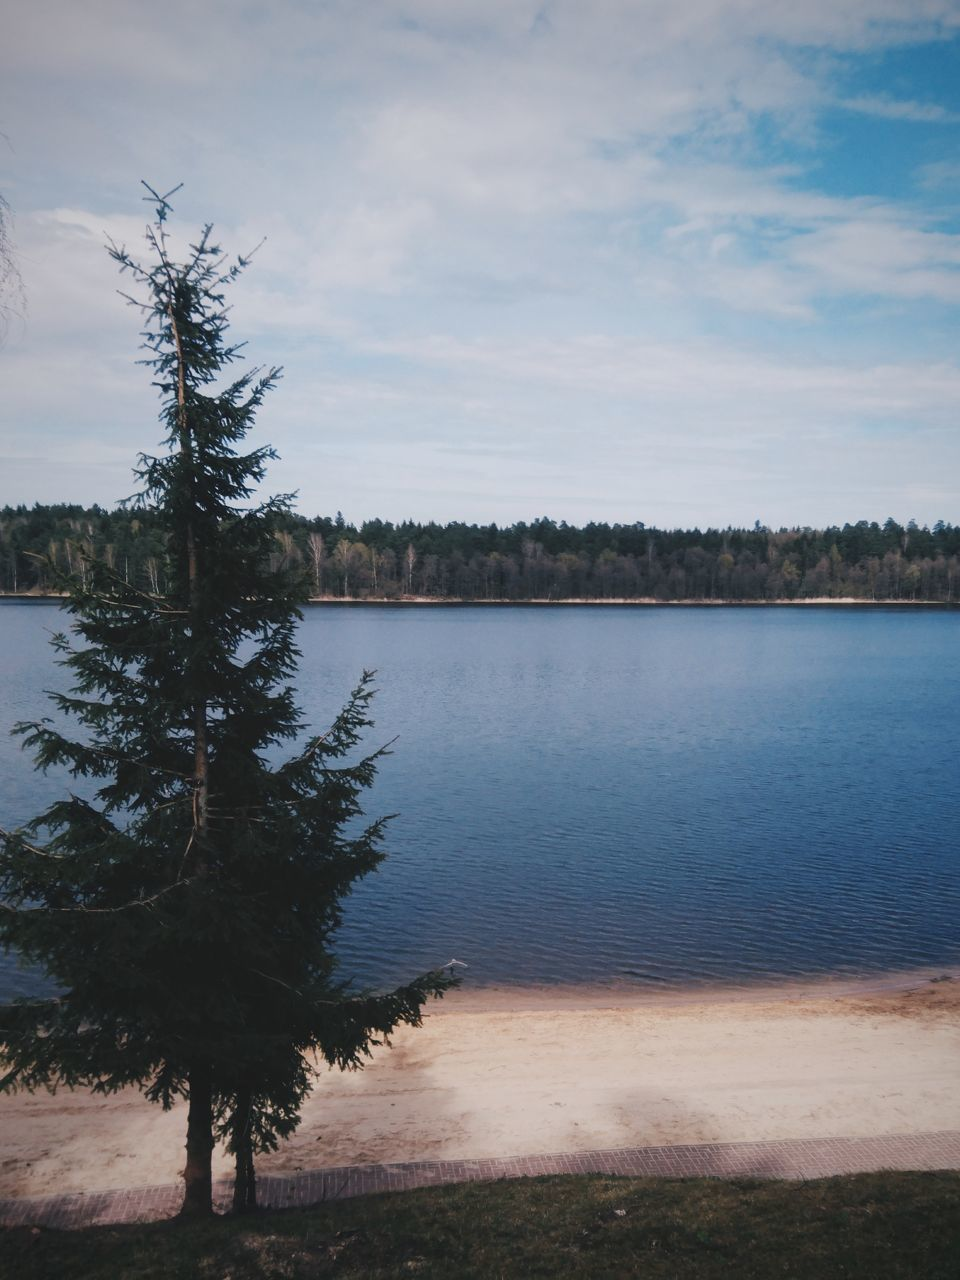 tree, scenics, water, sky, tranquil scene, tranquility, nature, lake, beauty in nature, cloud - sky, outdoors, no people, landscape, day, growth